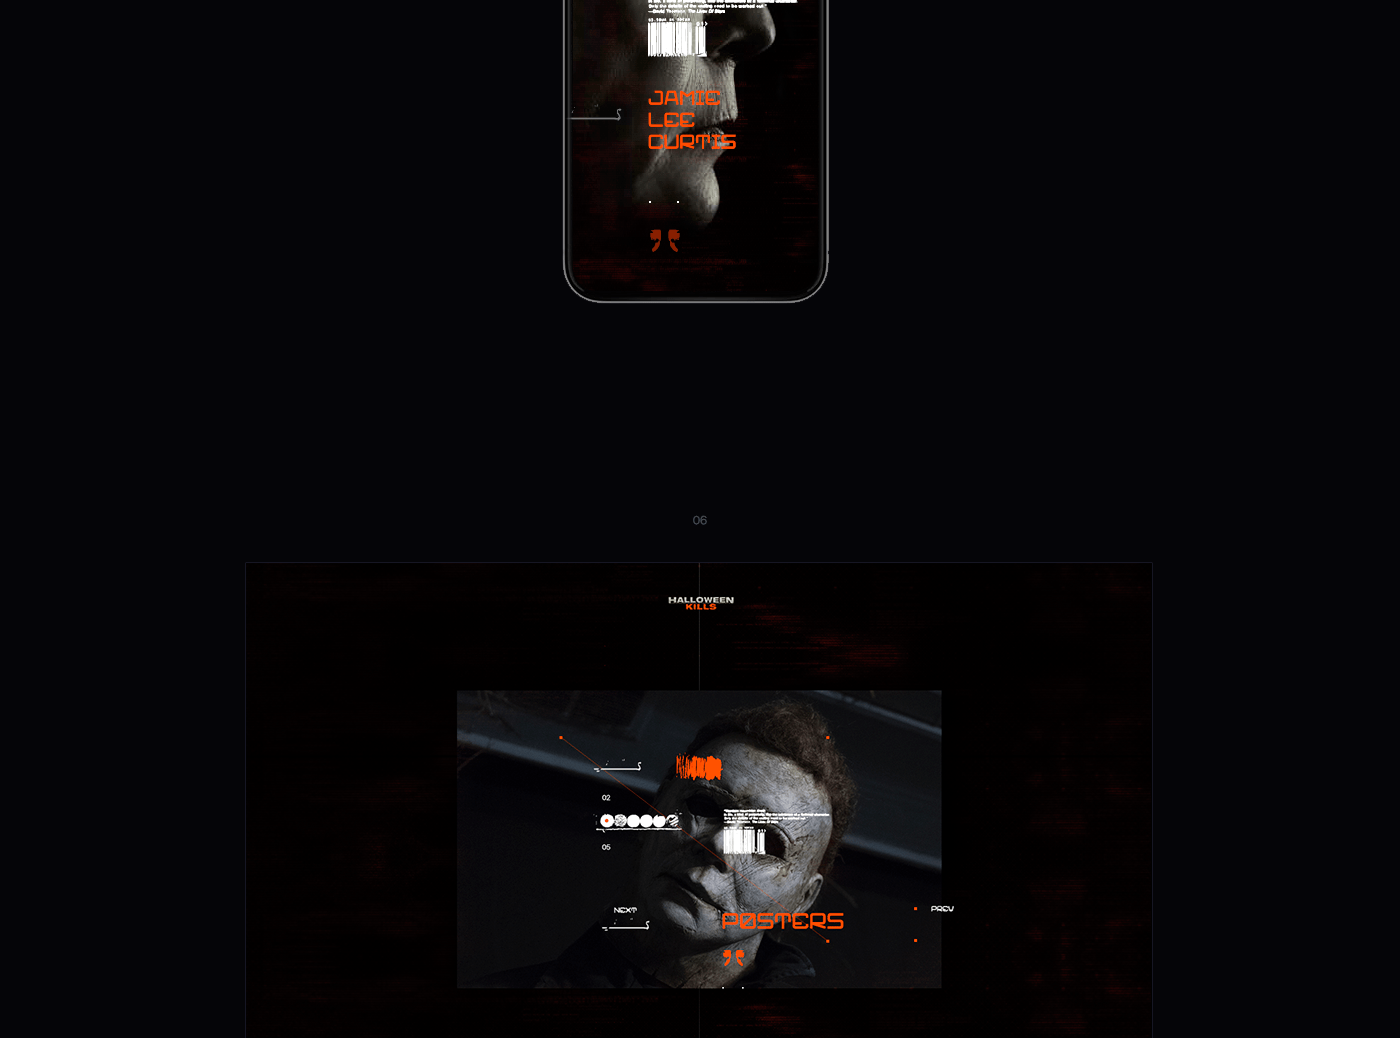 These spooky flicks make for great fun on o. Halloween - kills 2021 on Behance